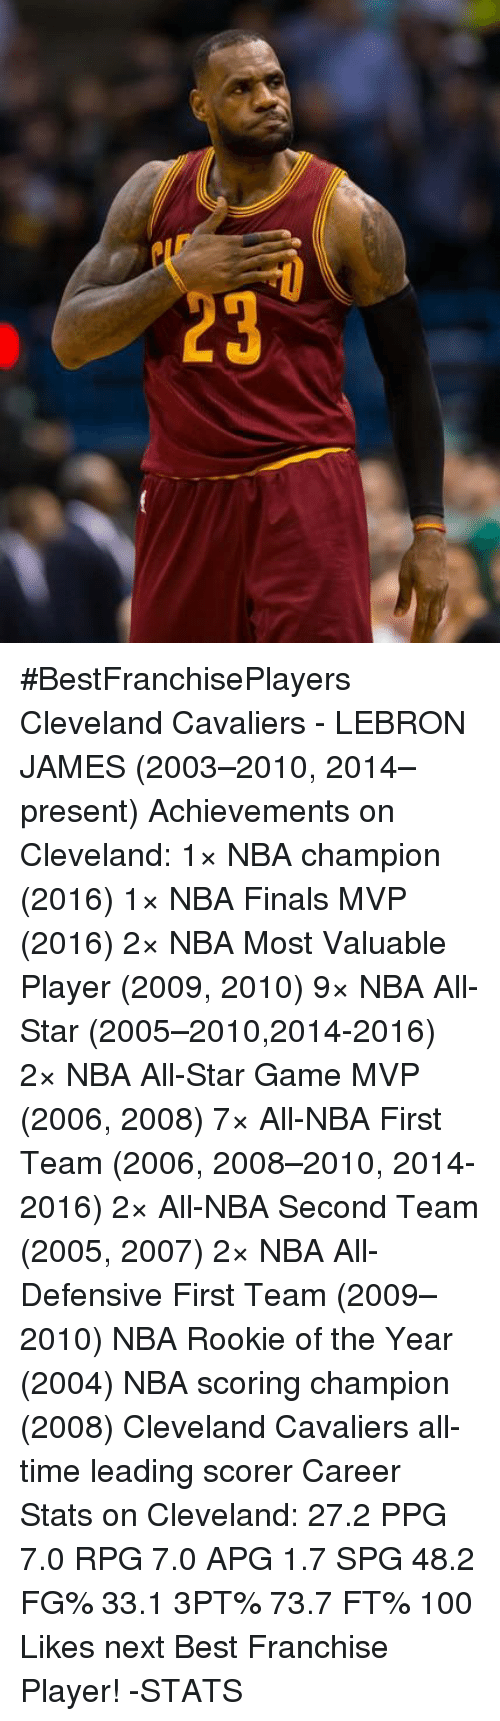 nba all stars: 3 #BestFranchisePlayers  Cleveland Cavaliers - LEBRON JAMES (2003–2010, 2014–present)  Achievements on Cleveland: 1× NBA champion (2016) 1× NBA Finals MVP (2016) 2× NBA Most Valuable Player (2009, 2010) 9× NBA All-Star (2005–2010,2014-2016) 2× NBA All-Star Game MVP (2006, 2008) 7× All-NBA First Team (2006, 2008–2010, 2014-2016) 2× All-NBA Second Team (2005, 2007) 2× NBA All-Defensive First Team (2009–2010) NBA Rookie of the Year (2004) NBA scoring champion (2008) Cleveland Cavaliers all-time leading scorer  Career Stats on Cleveland: 27.2 PPG 7.0 RPG 7.0 APG 1.7 SPG 48.2 FG% 33.1 3PT% 73.7 FT%  100 Likes next Best Franchise Player!  -STATS